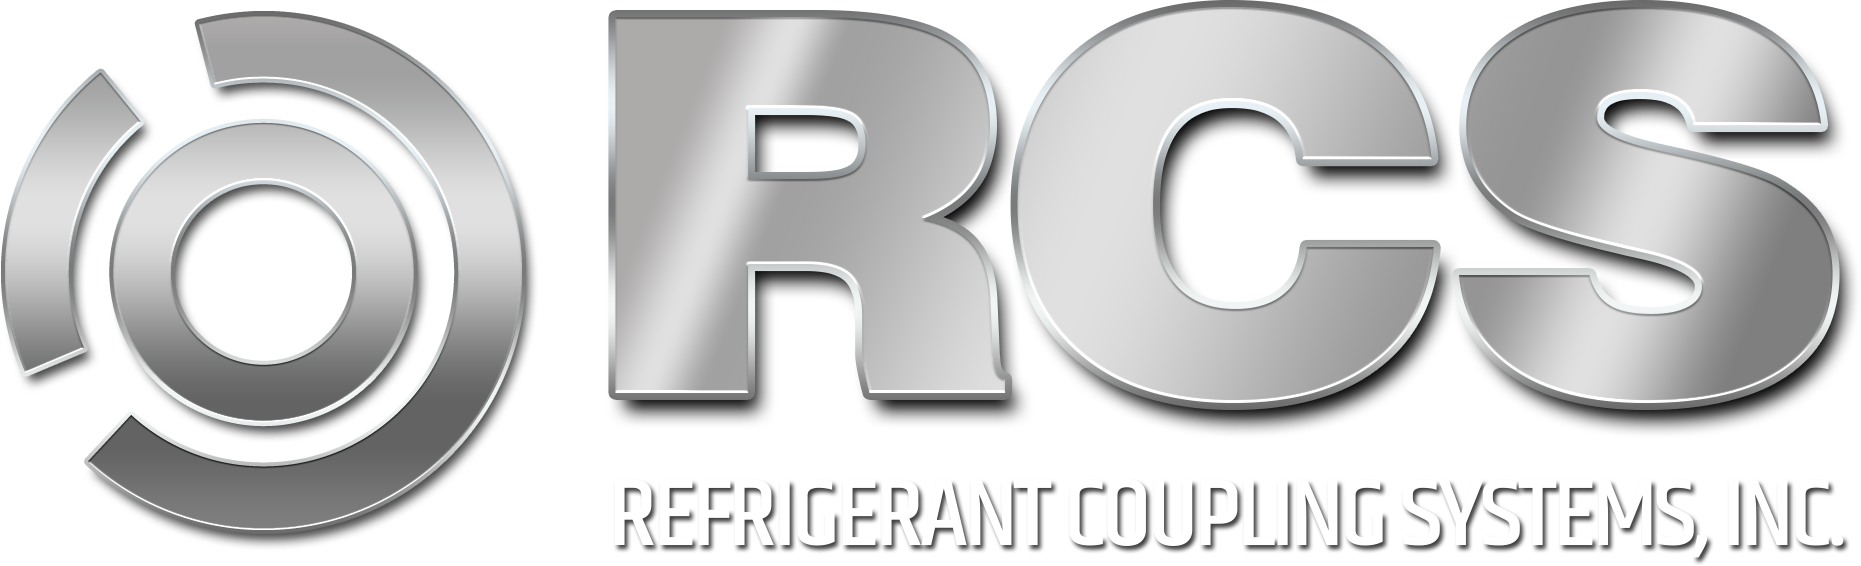 Refrigerant Coupling Systems, Inc.